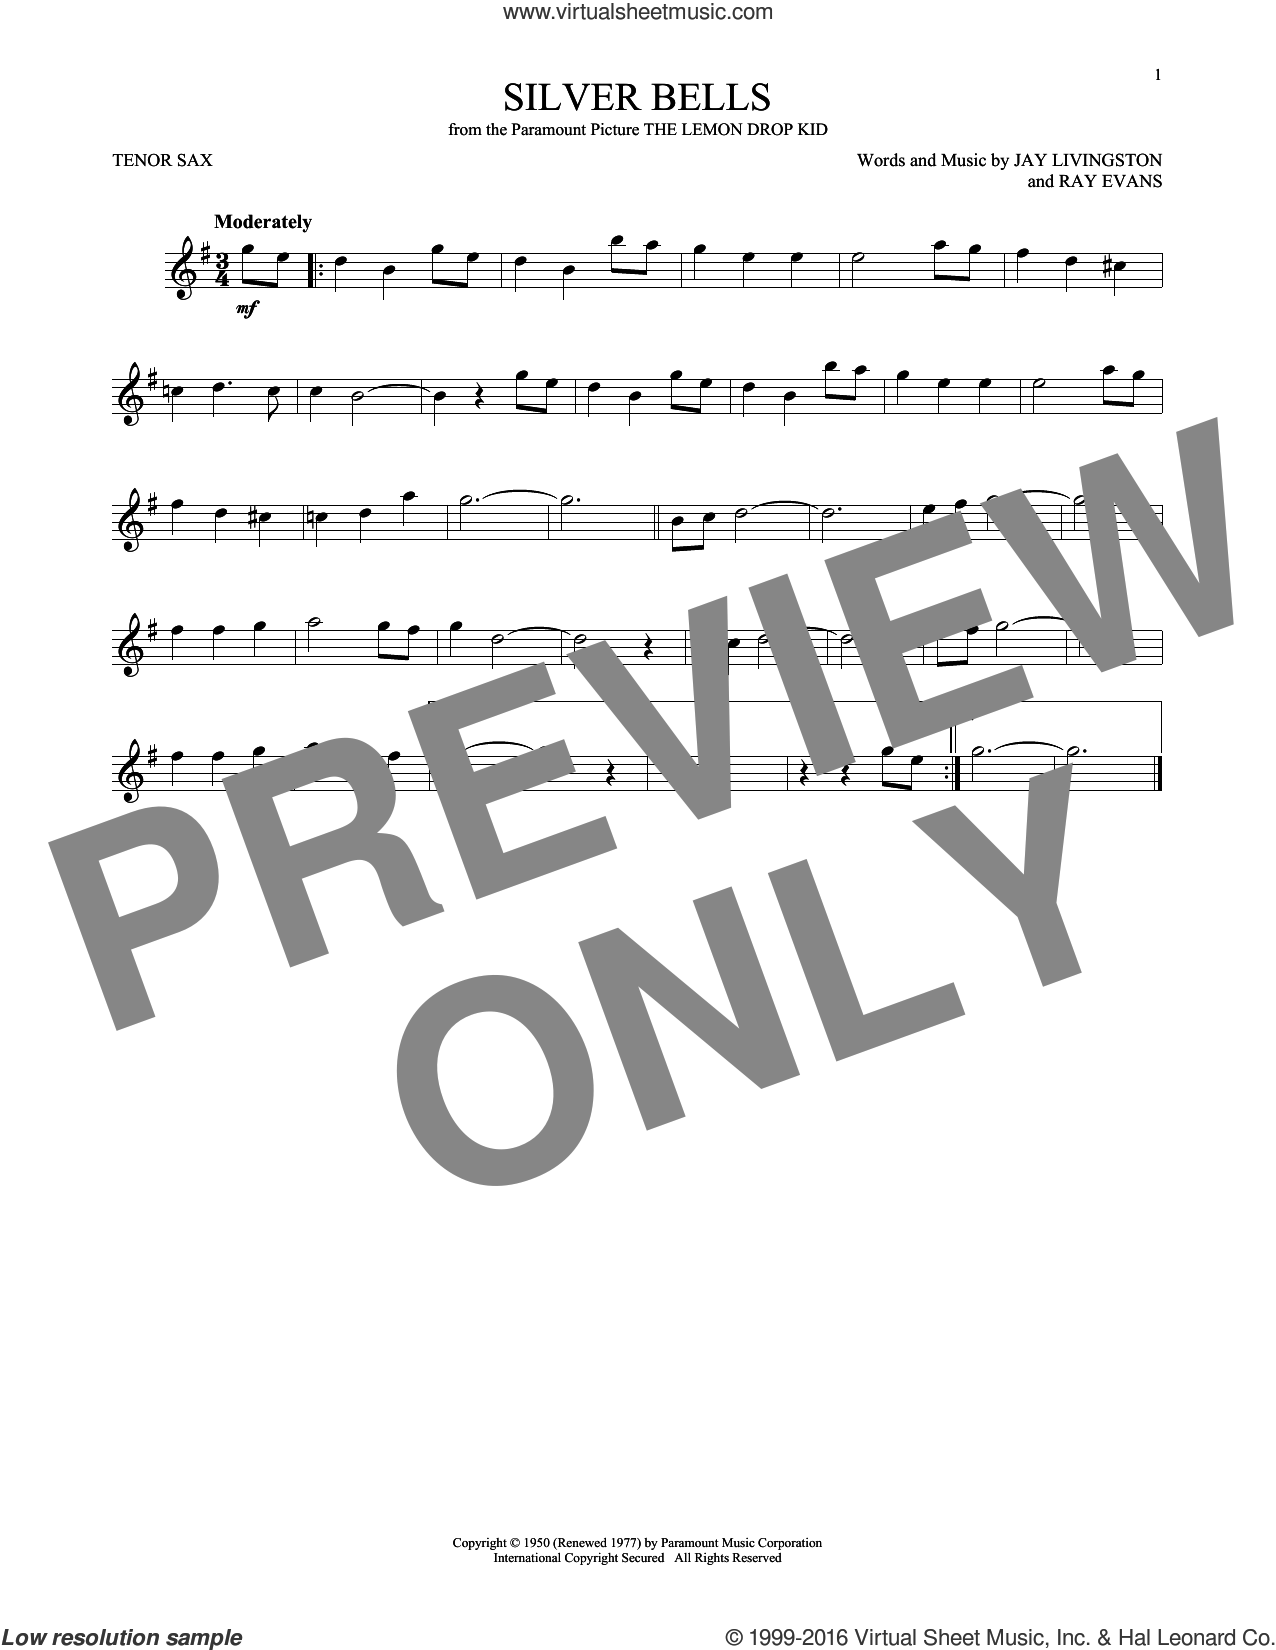 Silver Bells sheet music for tenor saxophone solo by Jay Livingston, Jay Livingston & Ray Evans and Ray Evans, intermediate skill level